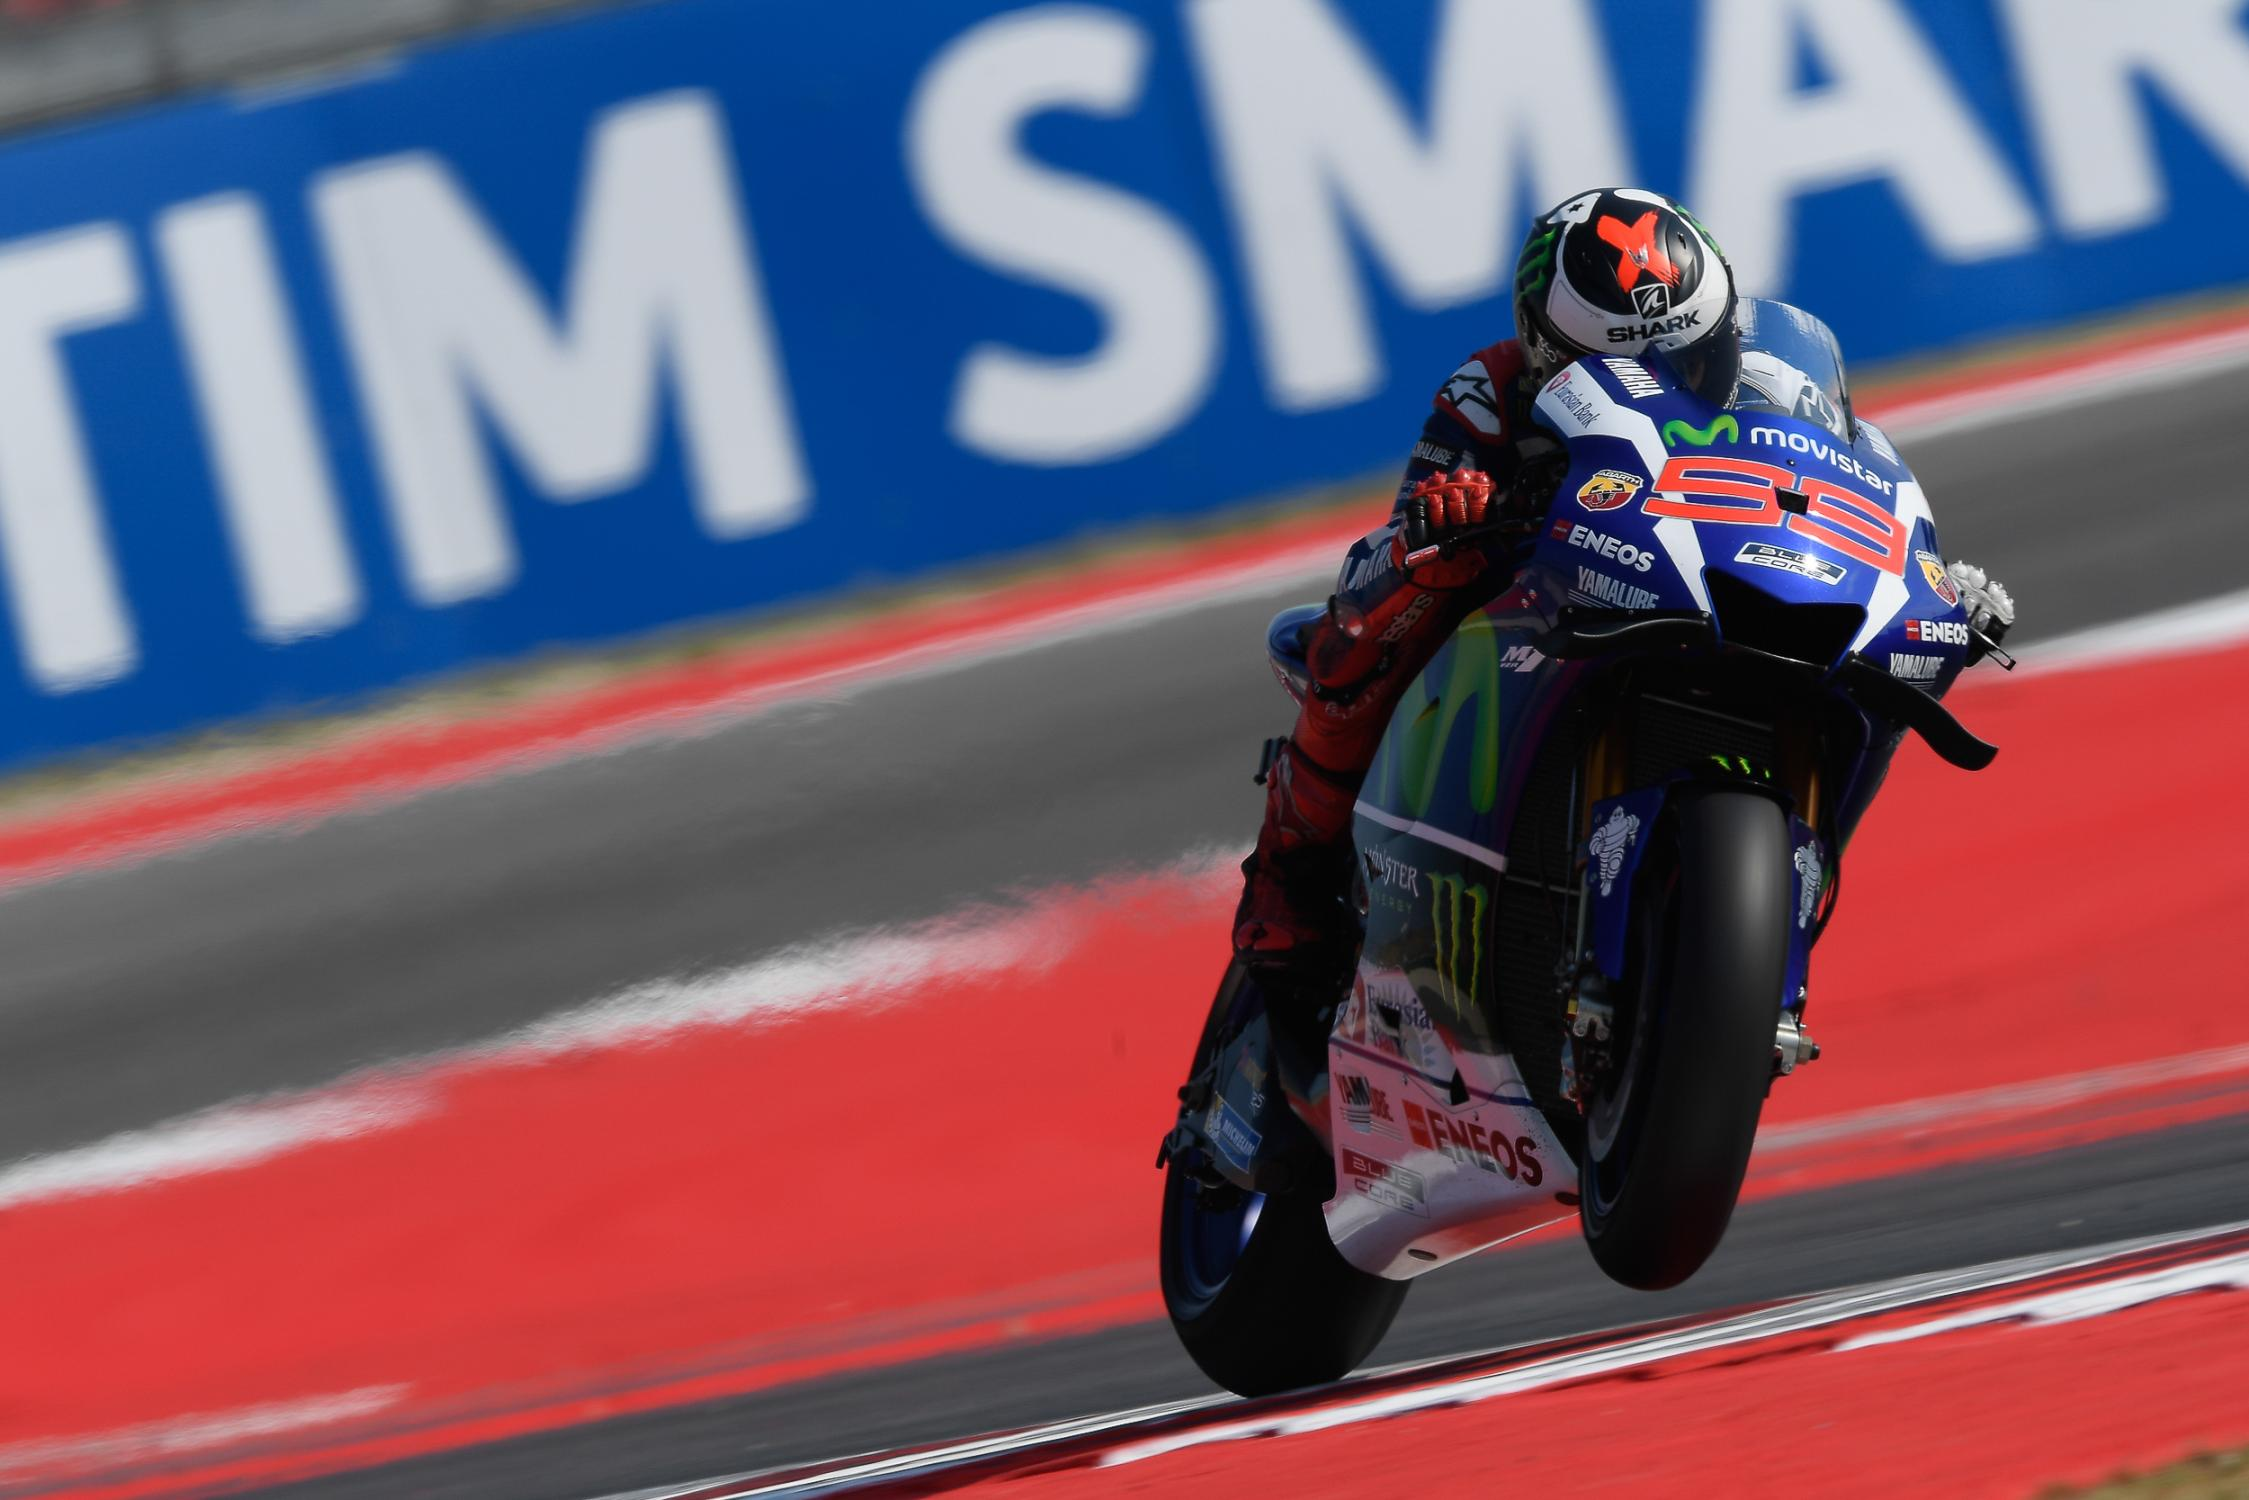 [GP] Misano 99-lorenzo_dsc2074_e.gallery_full_top_fullscreen